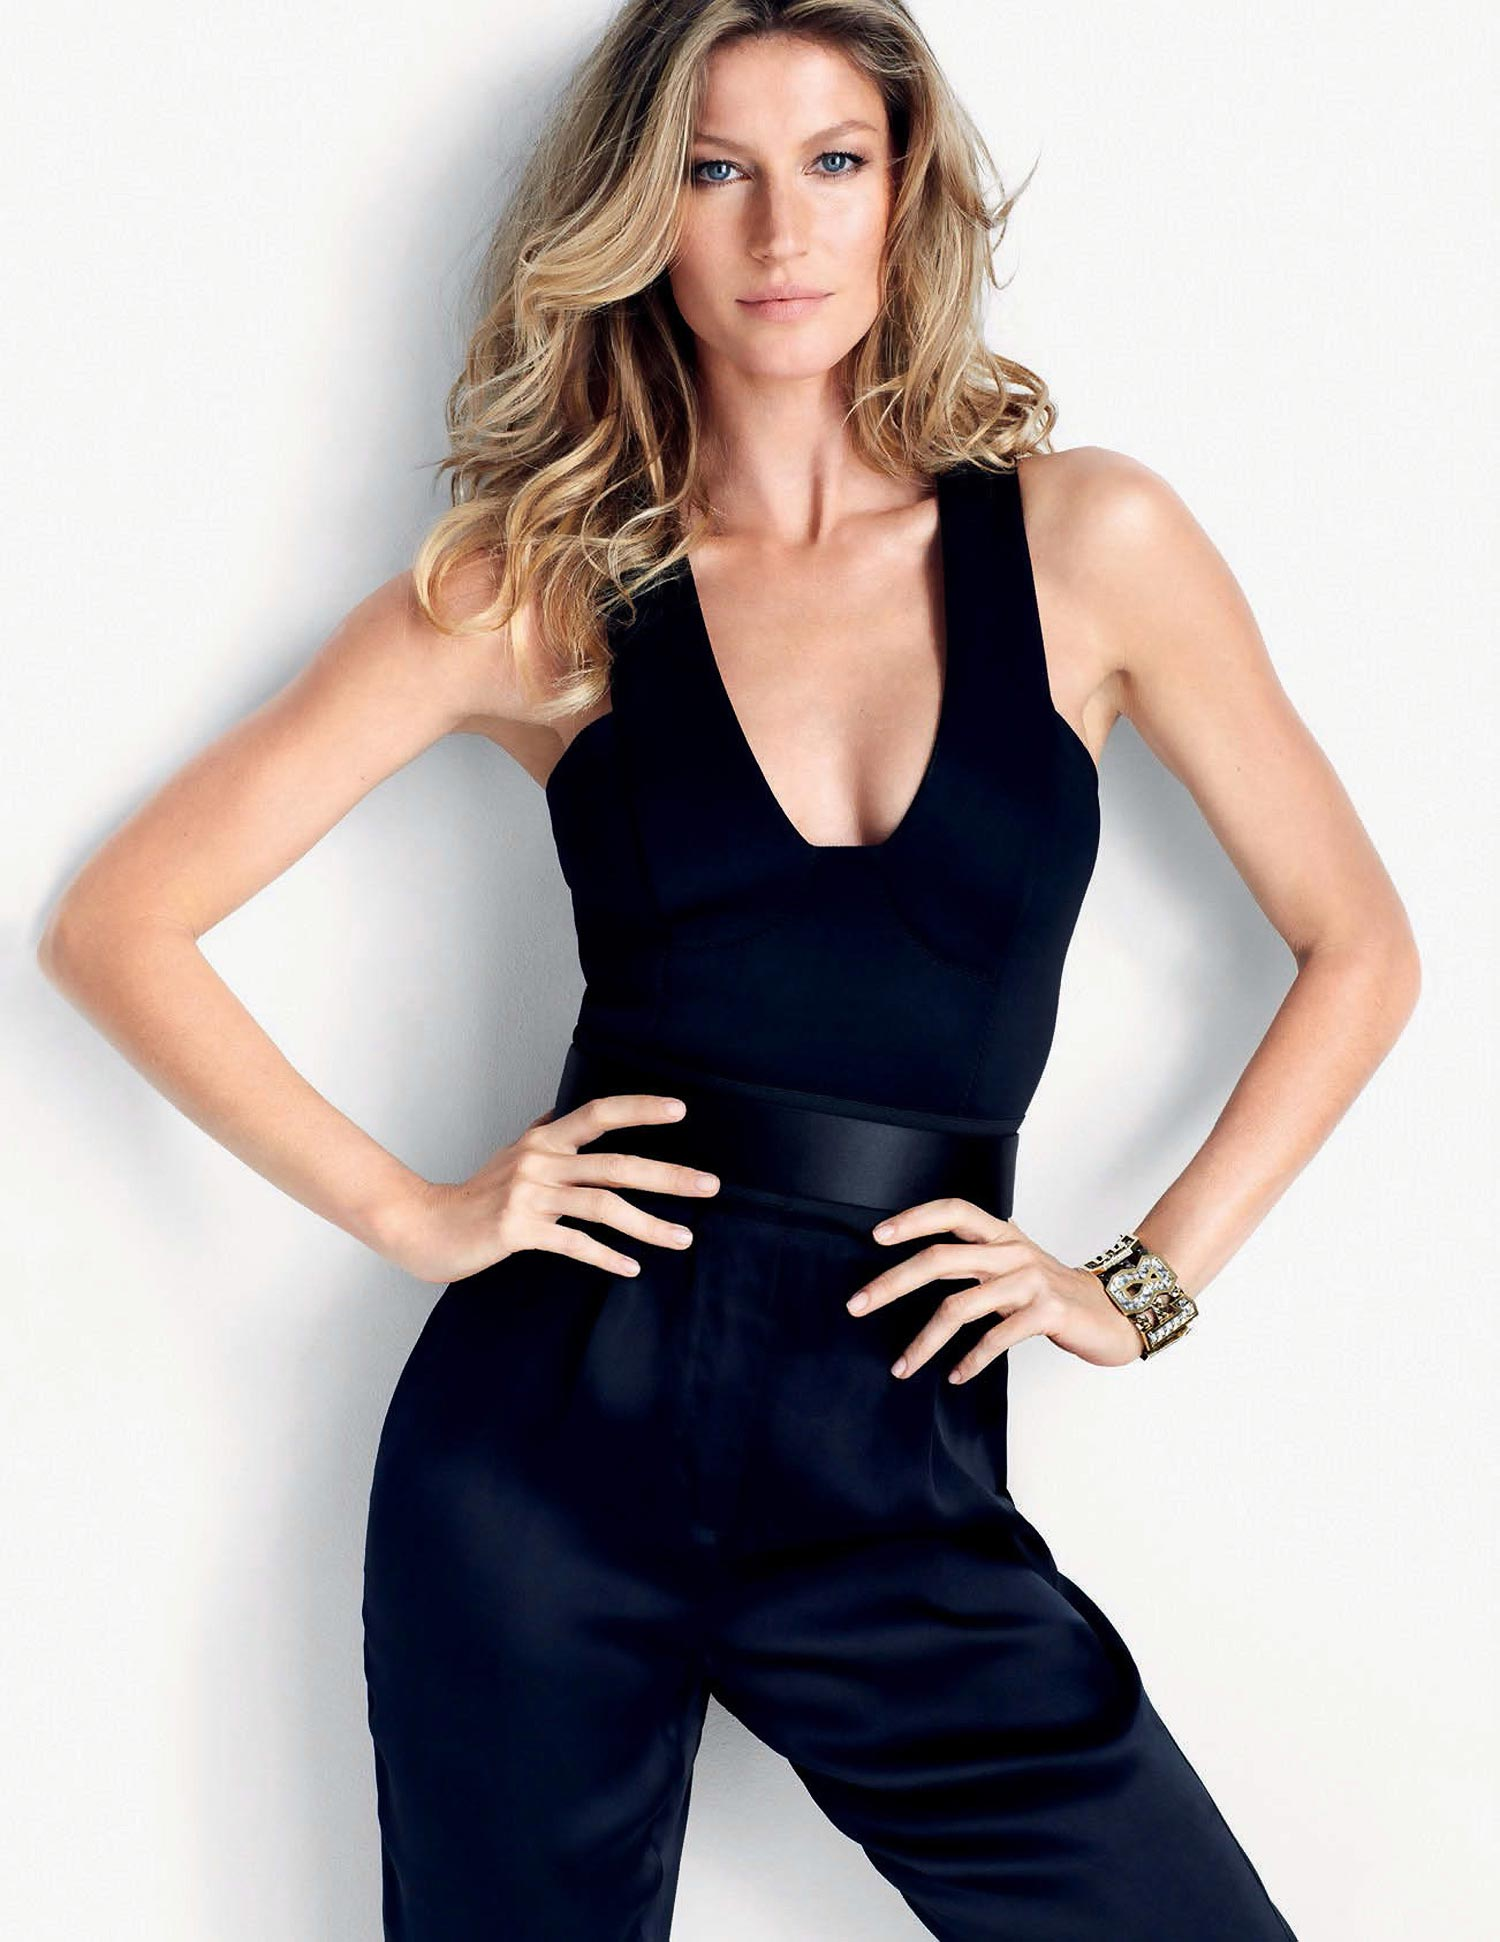 Gisele Bundchen - Photoshoot For Elle Magazine 2014 Matt -9329